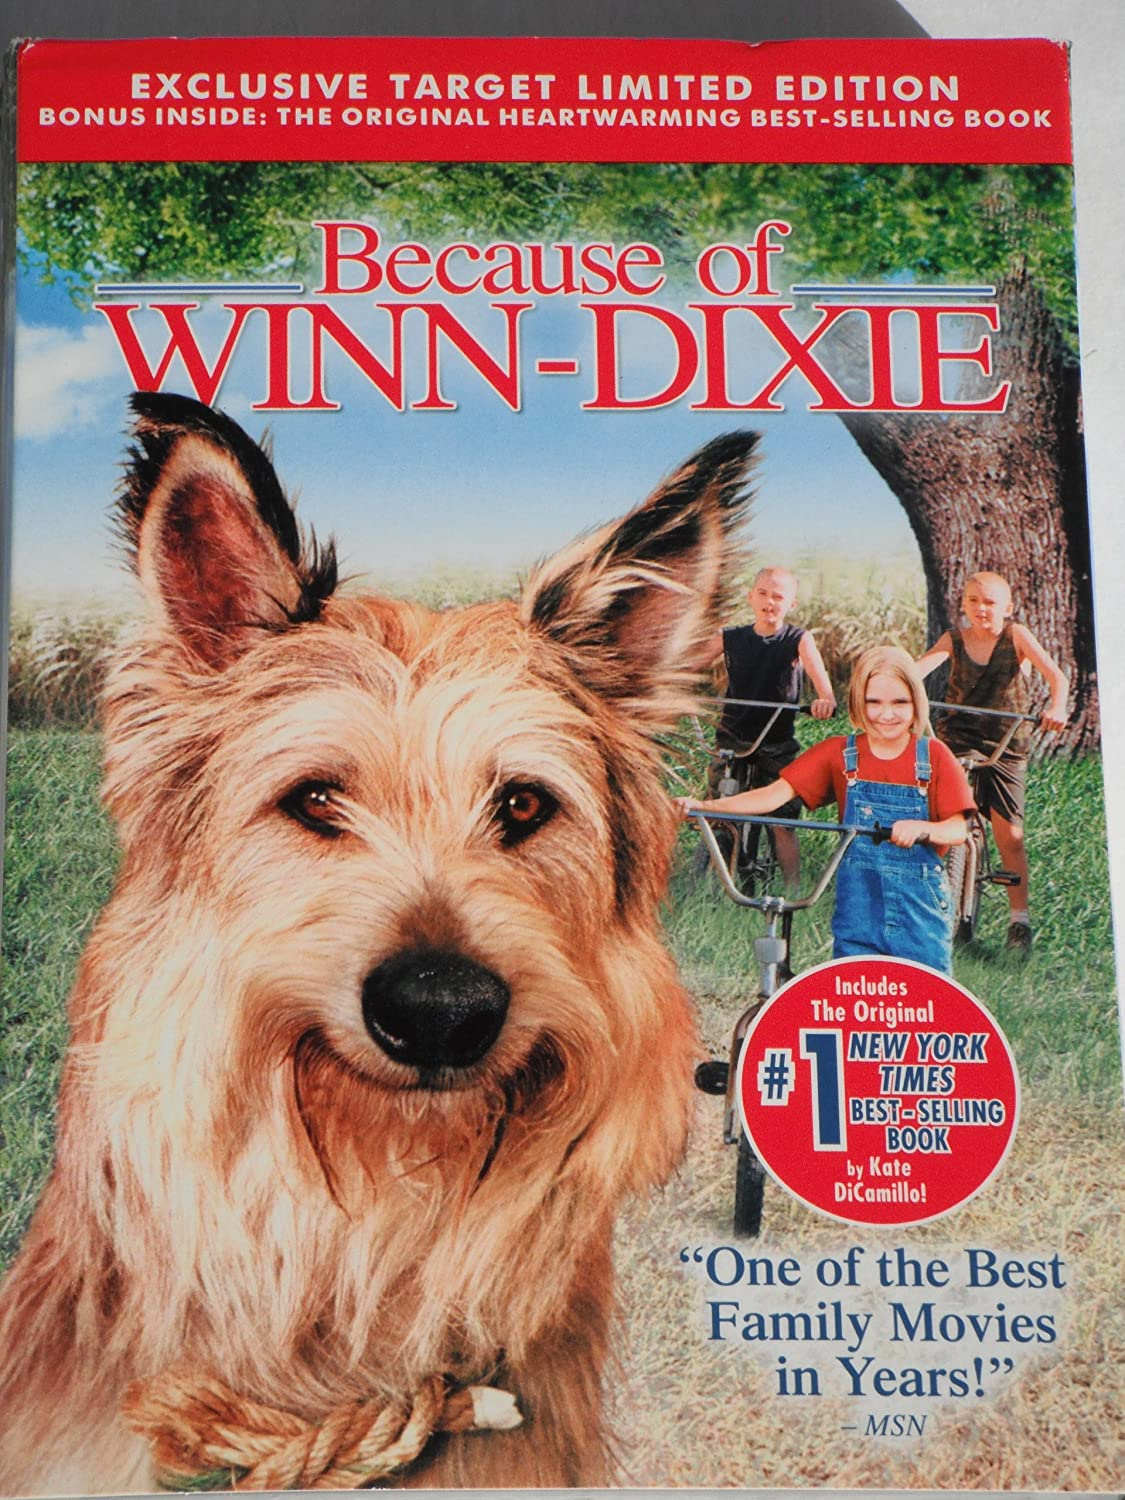 Review of winn dixie free appliances - Amazon Com Exclusive Target Limited Edition Because Of Winn Dixie Dvd And Original Paperback Book Movies Tv